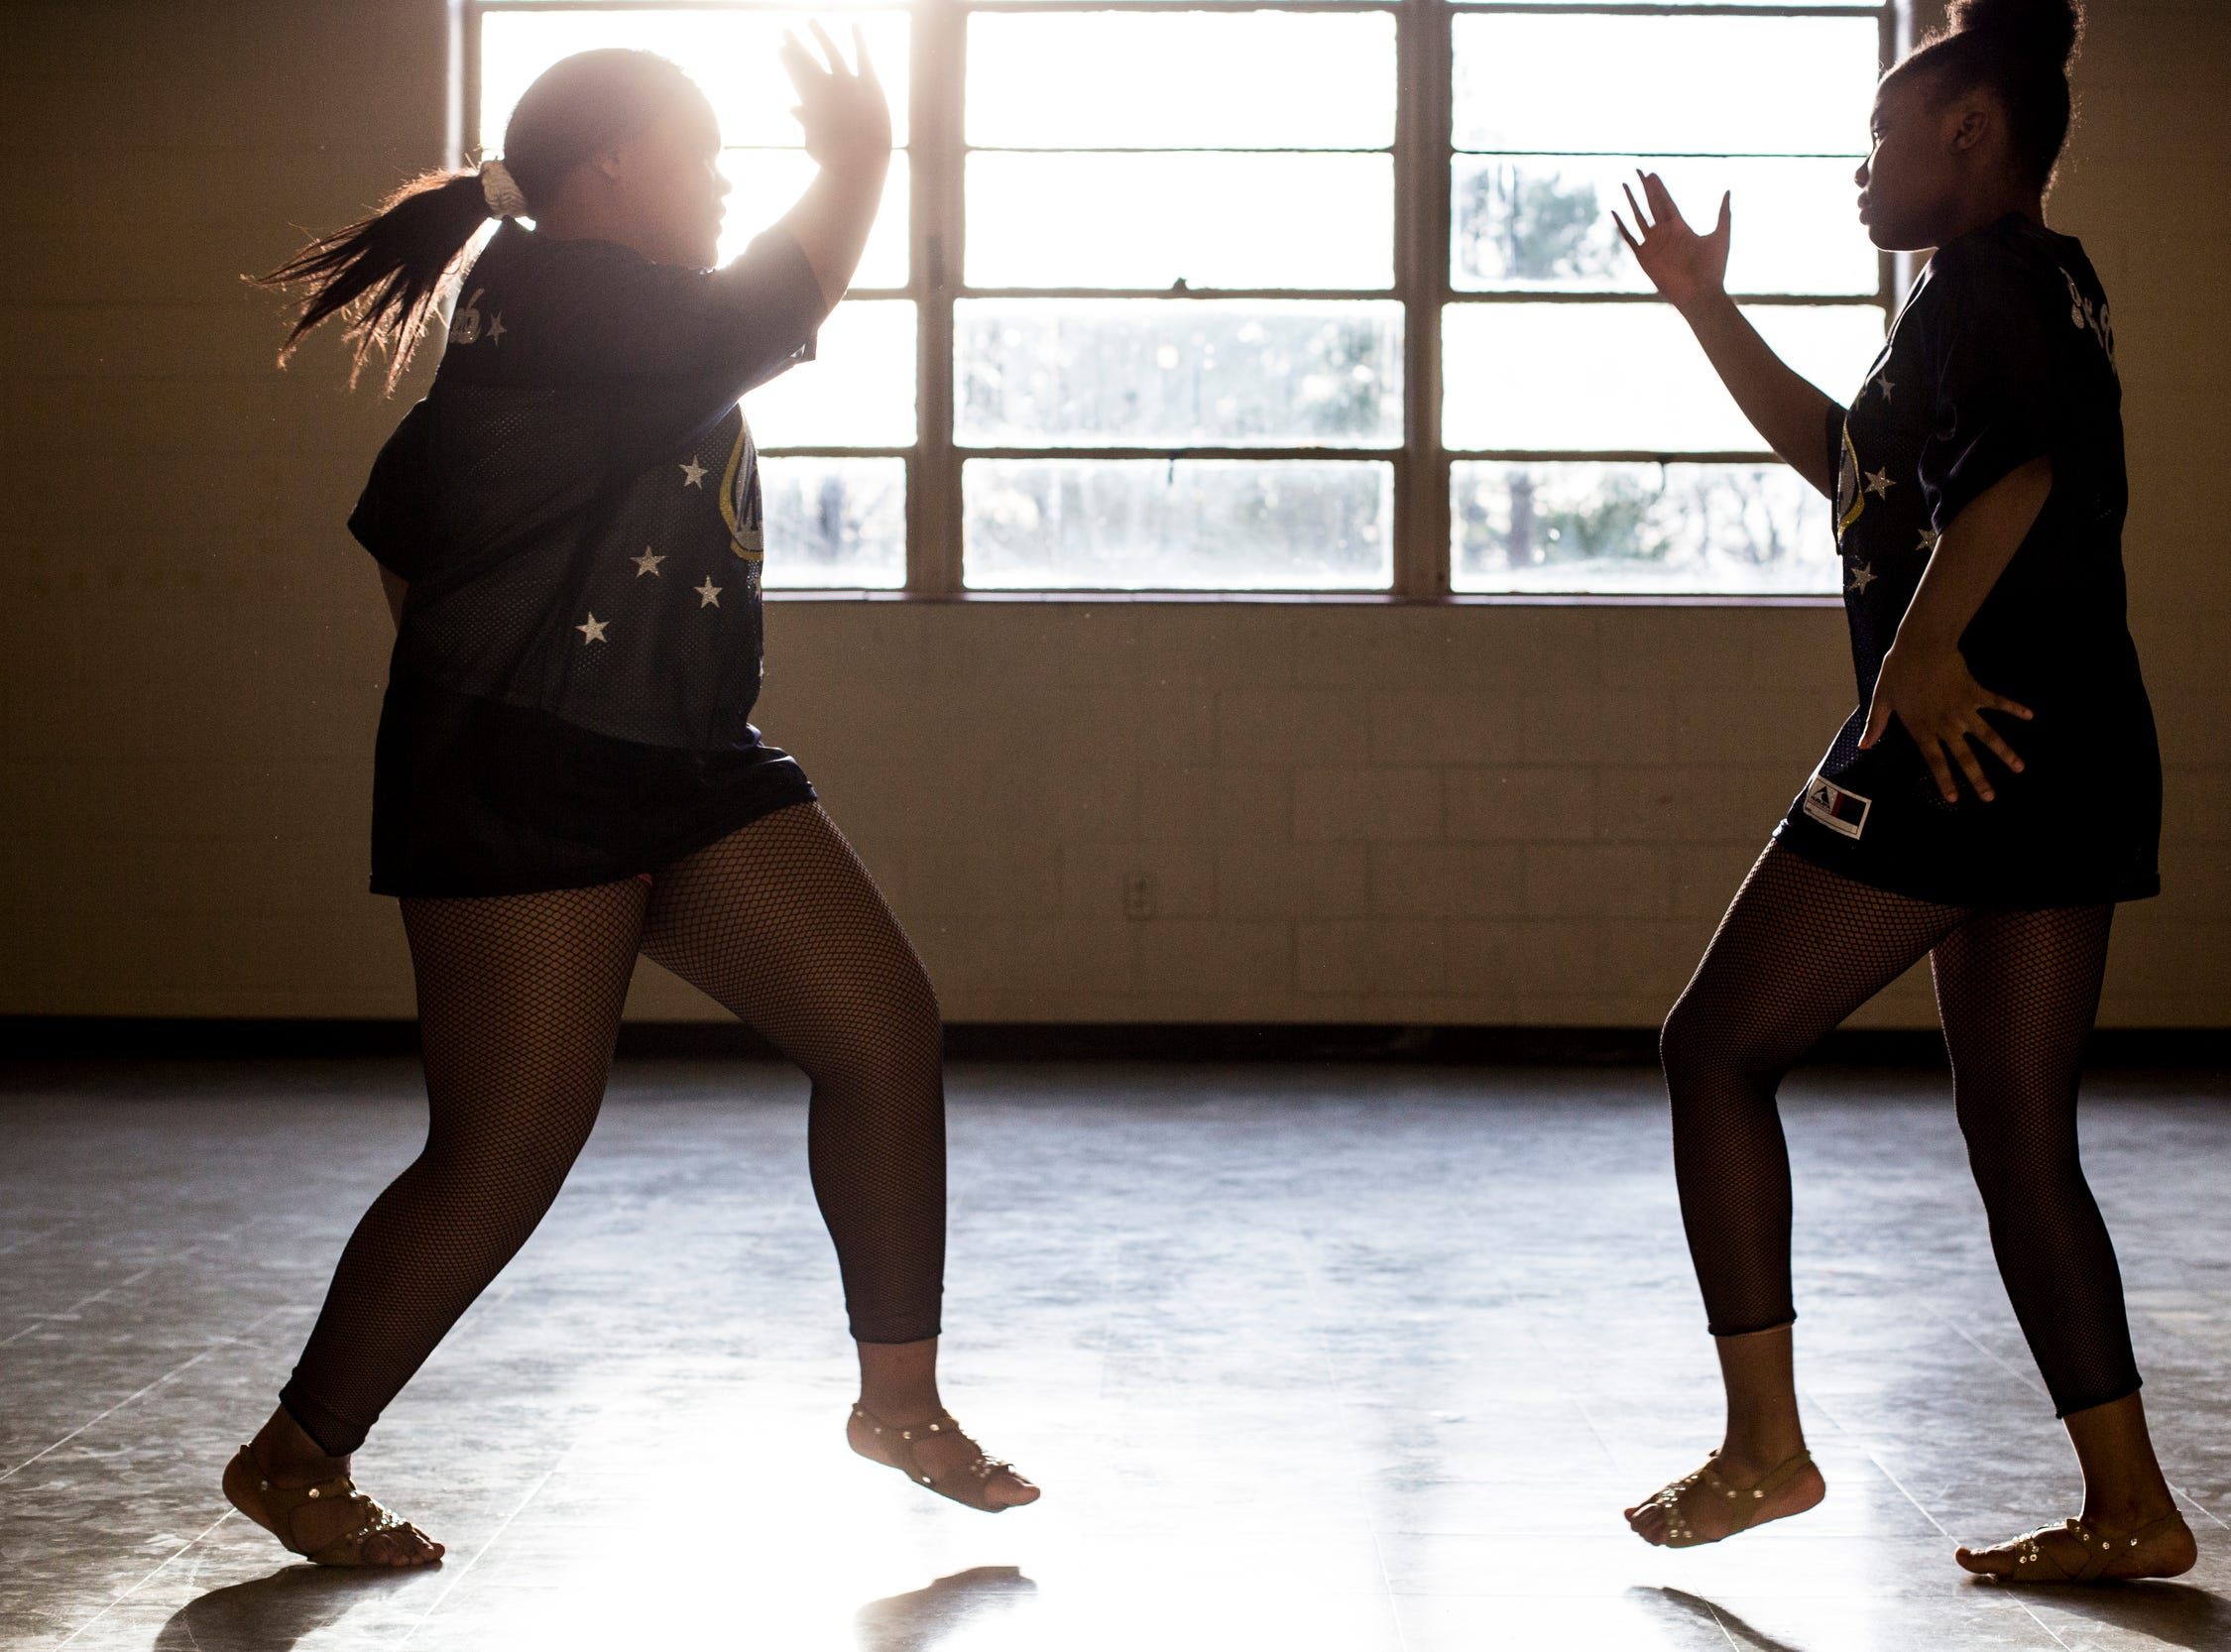 Members of the Memphis Community Youth Mighty Marchers, from left, LaNordia Fletcher, 13, and Angel Mitchell, 12, work on their dance moves during a practice at the Ed Rice Community Center in Frayser on March 28, 2019.